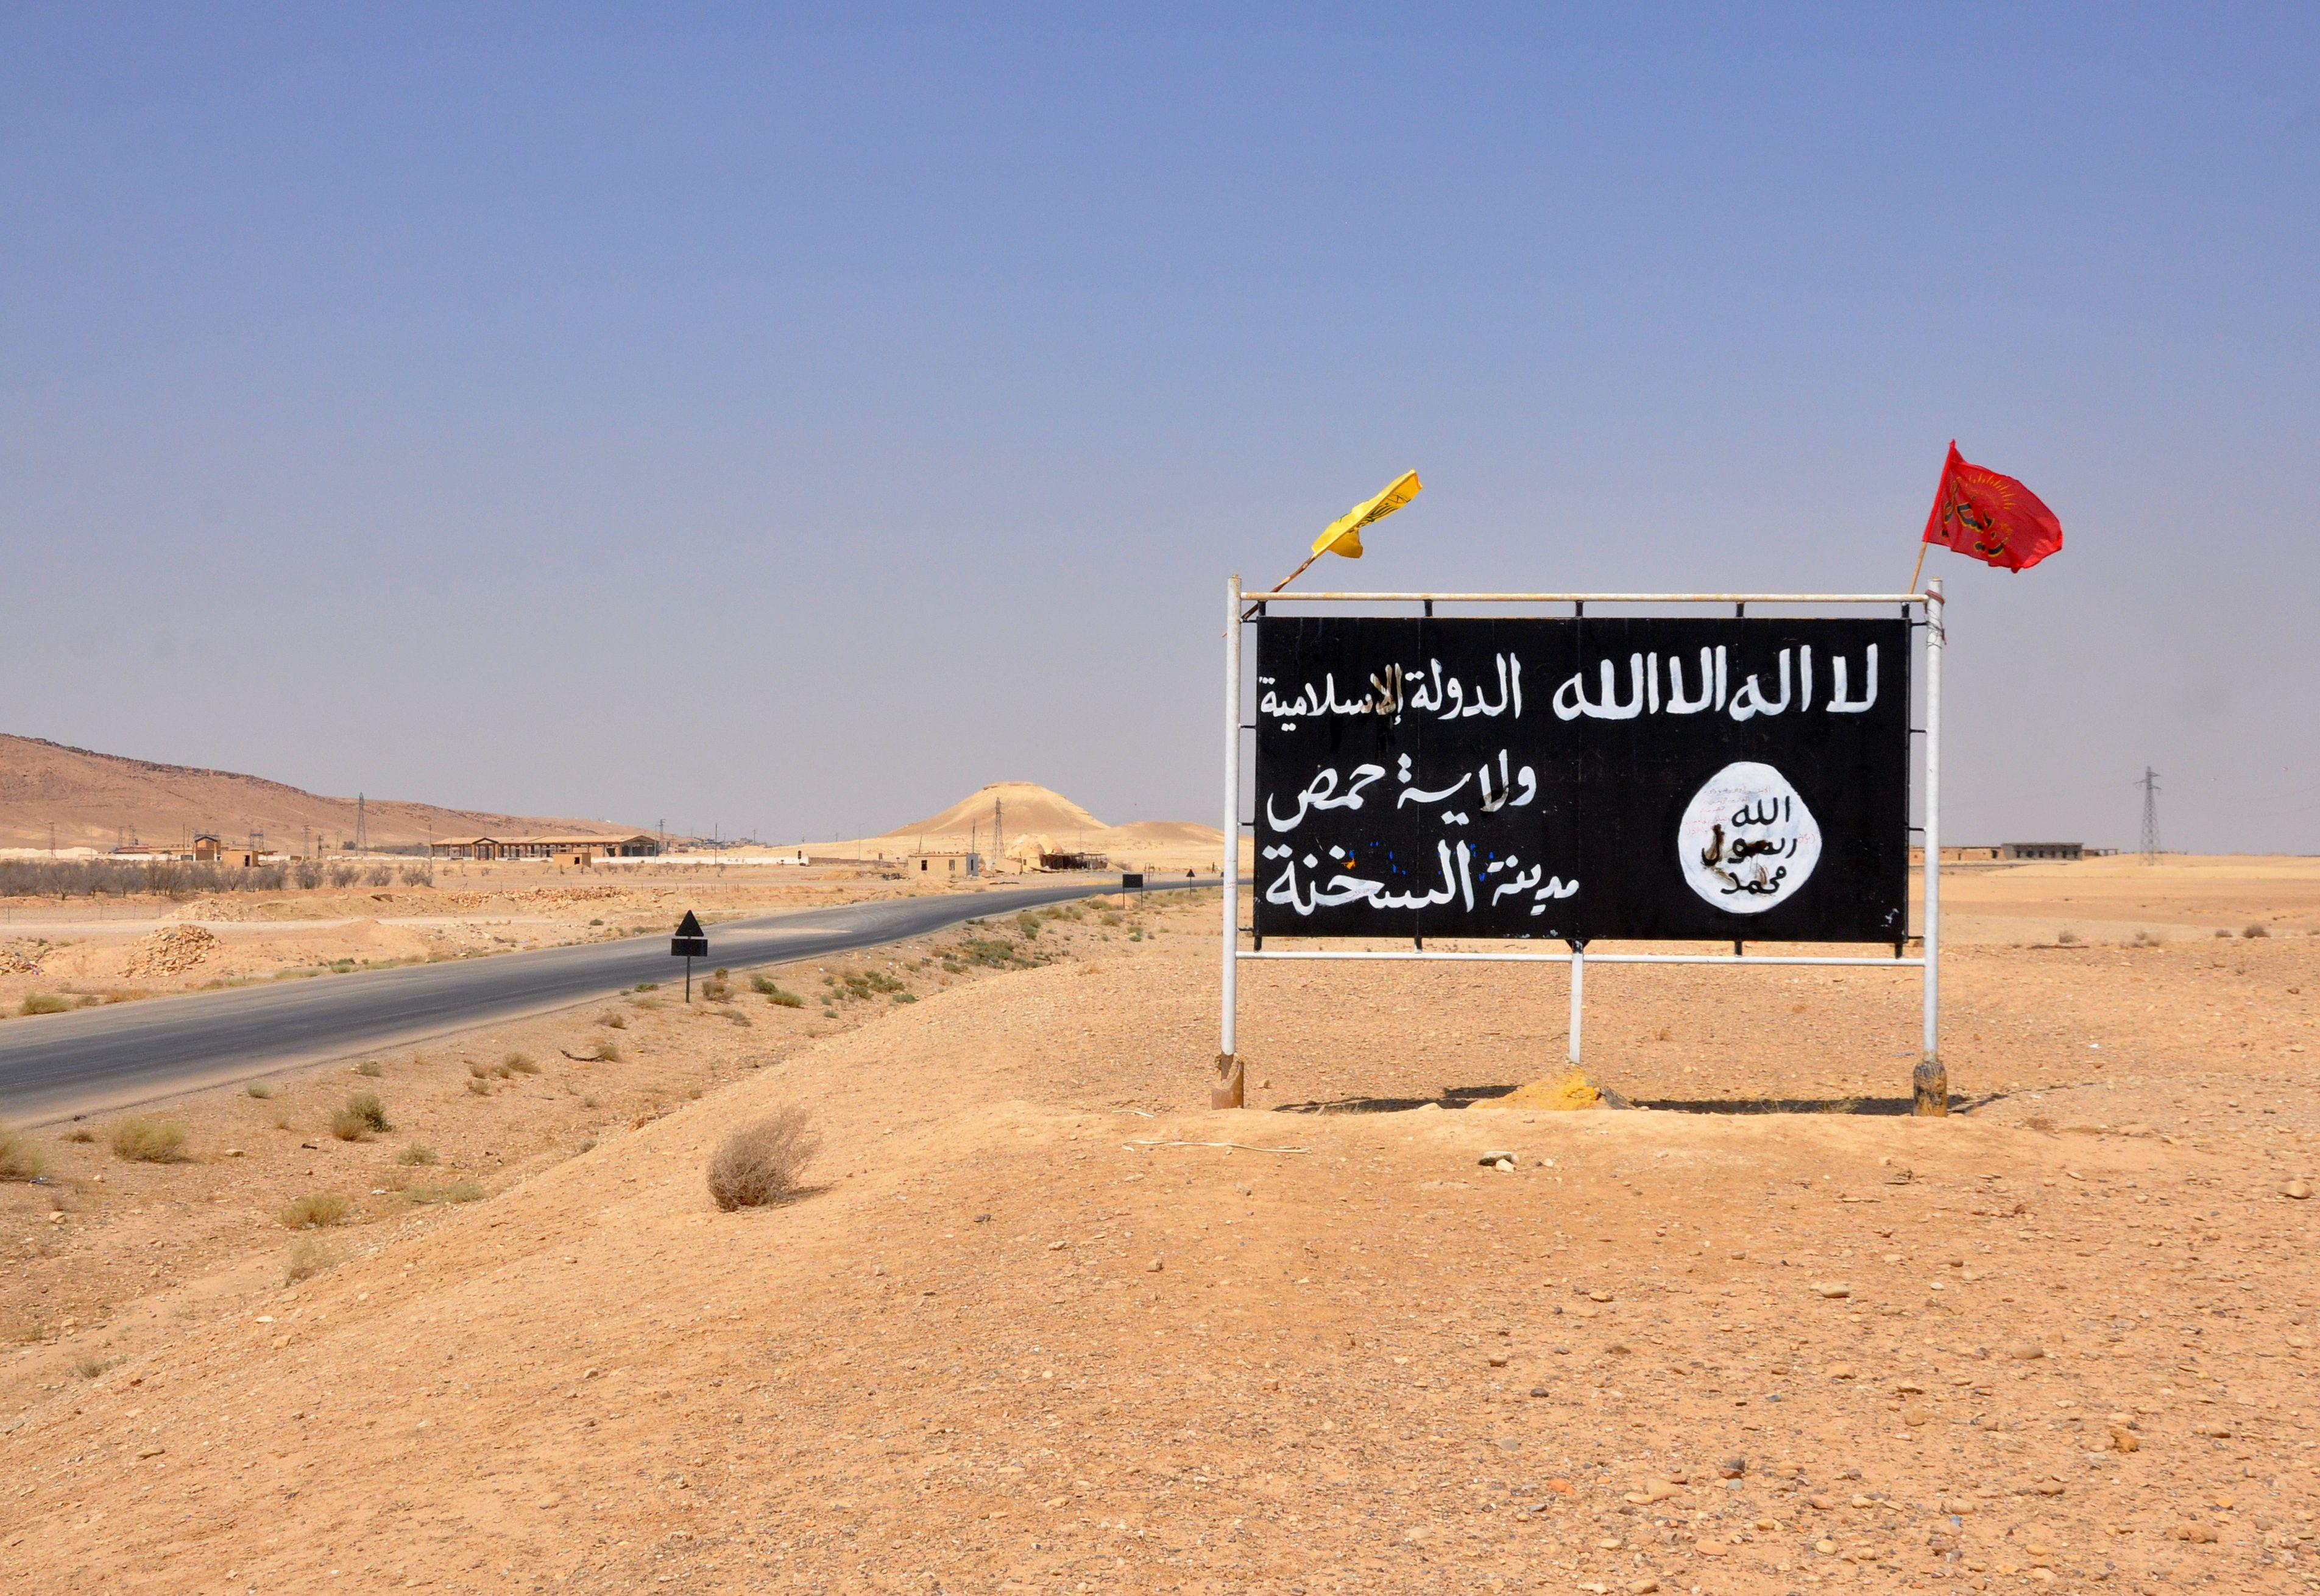 the aim of isis essay